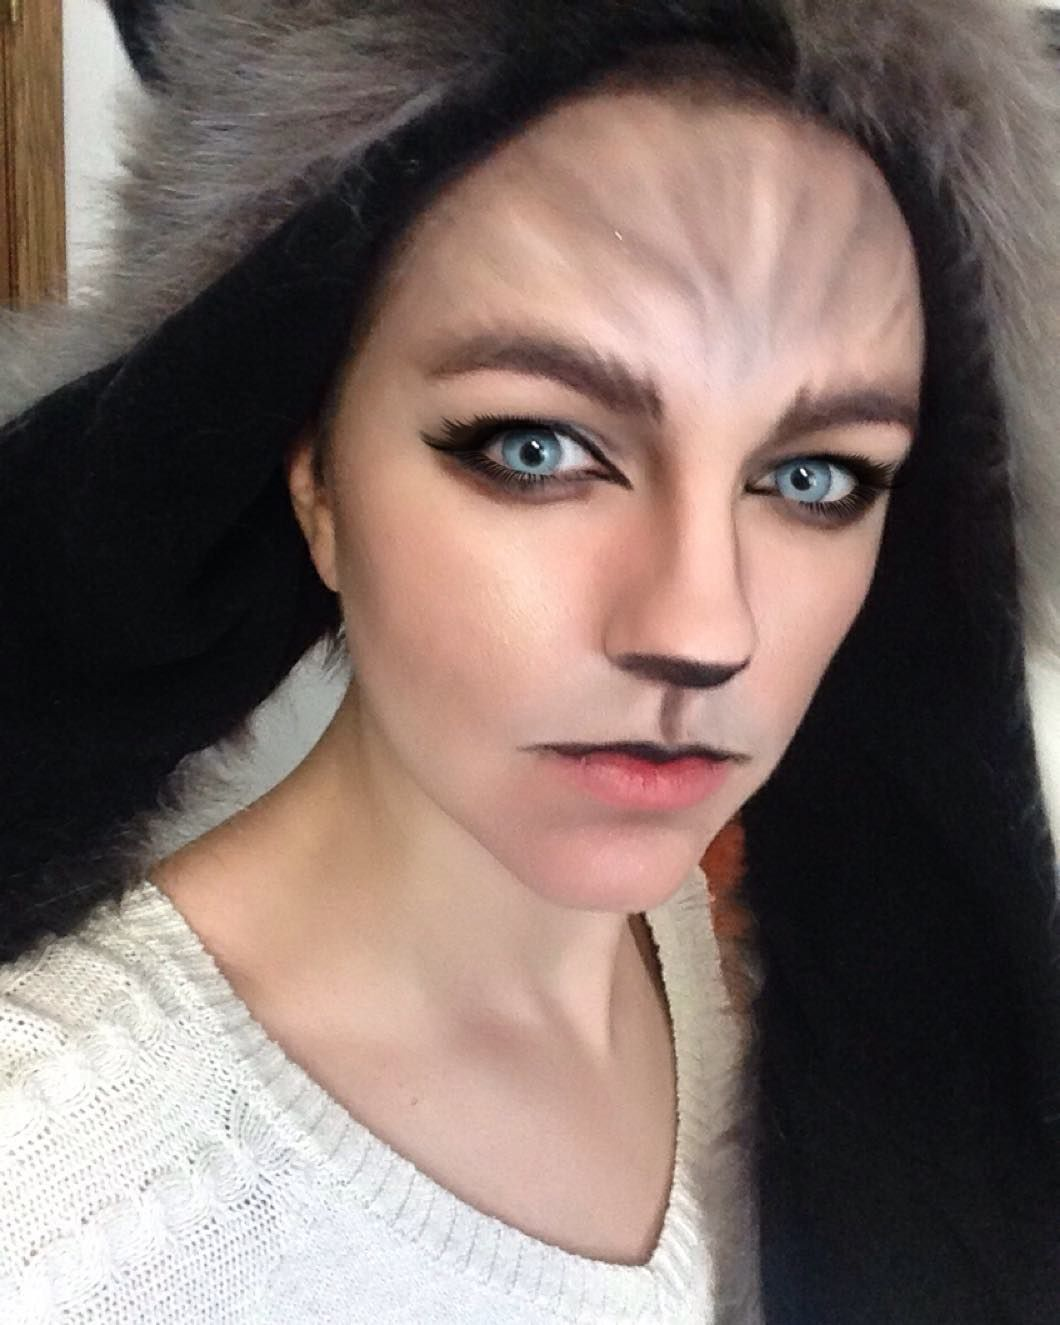 Wolf/werewolf makeup #halloween #halloweeniscoming #mua #makeup ...